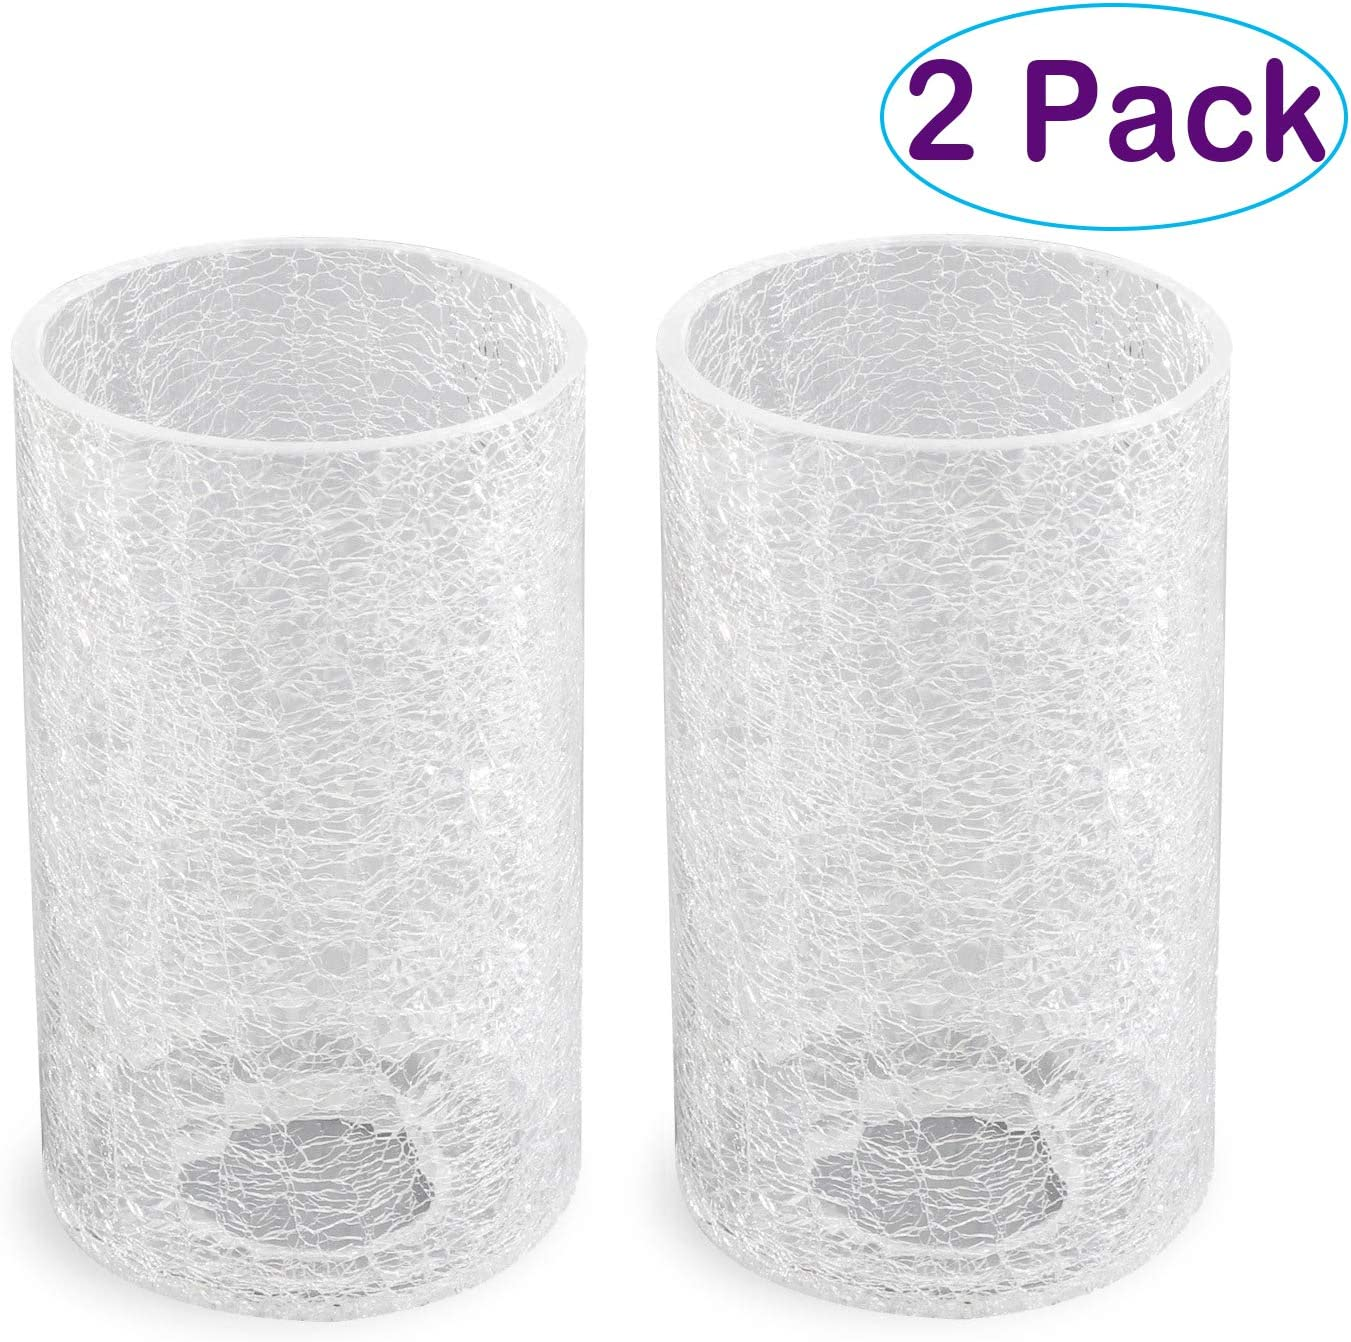 Eumyviv 2 Pack Clear Glass Lamp Shade with Crack Finish, Fixture Replacement Glass Globe or Lampshade with 1-5/8-Inch Fitter Opening A00014